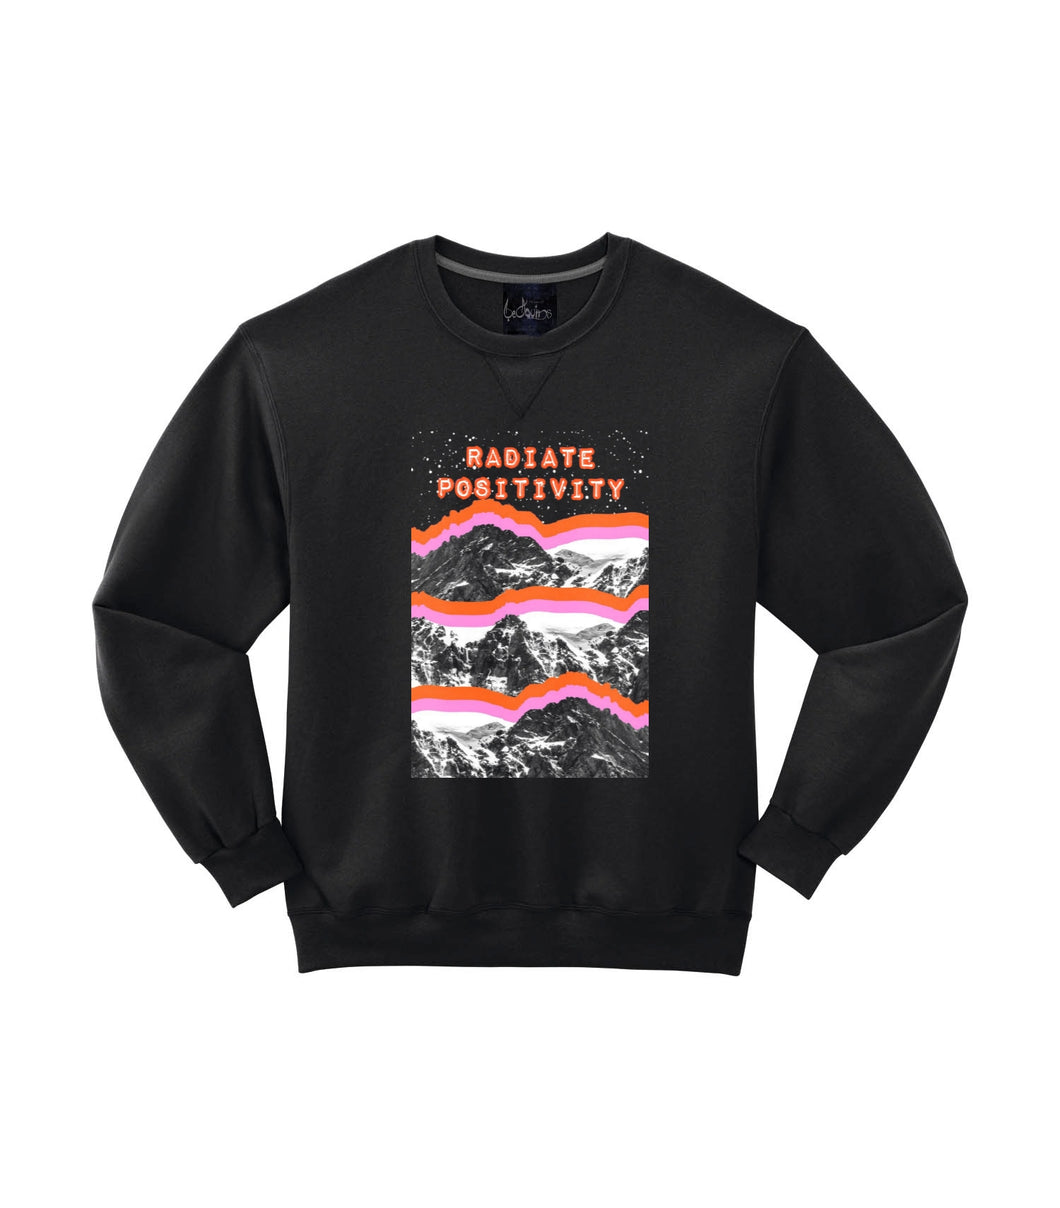 Radiate positivity sweater